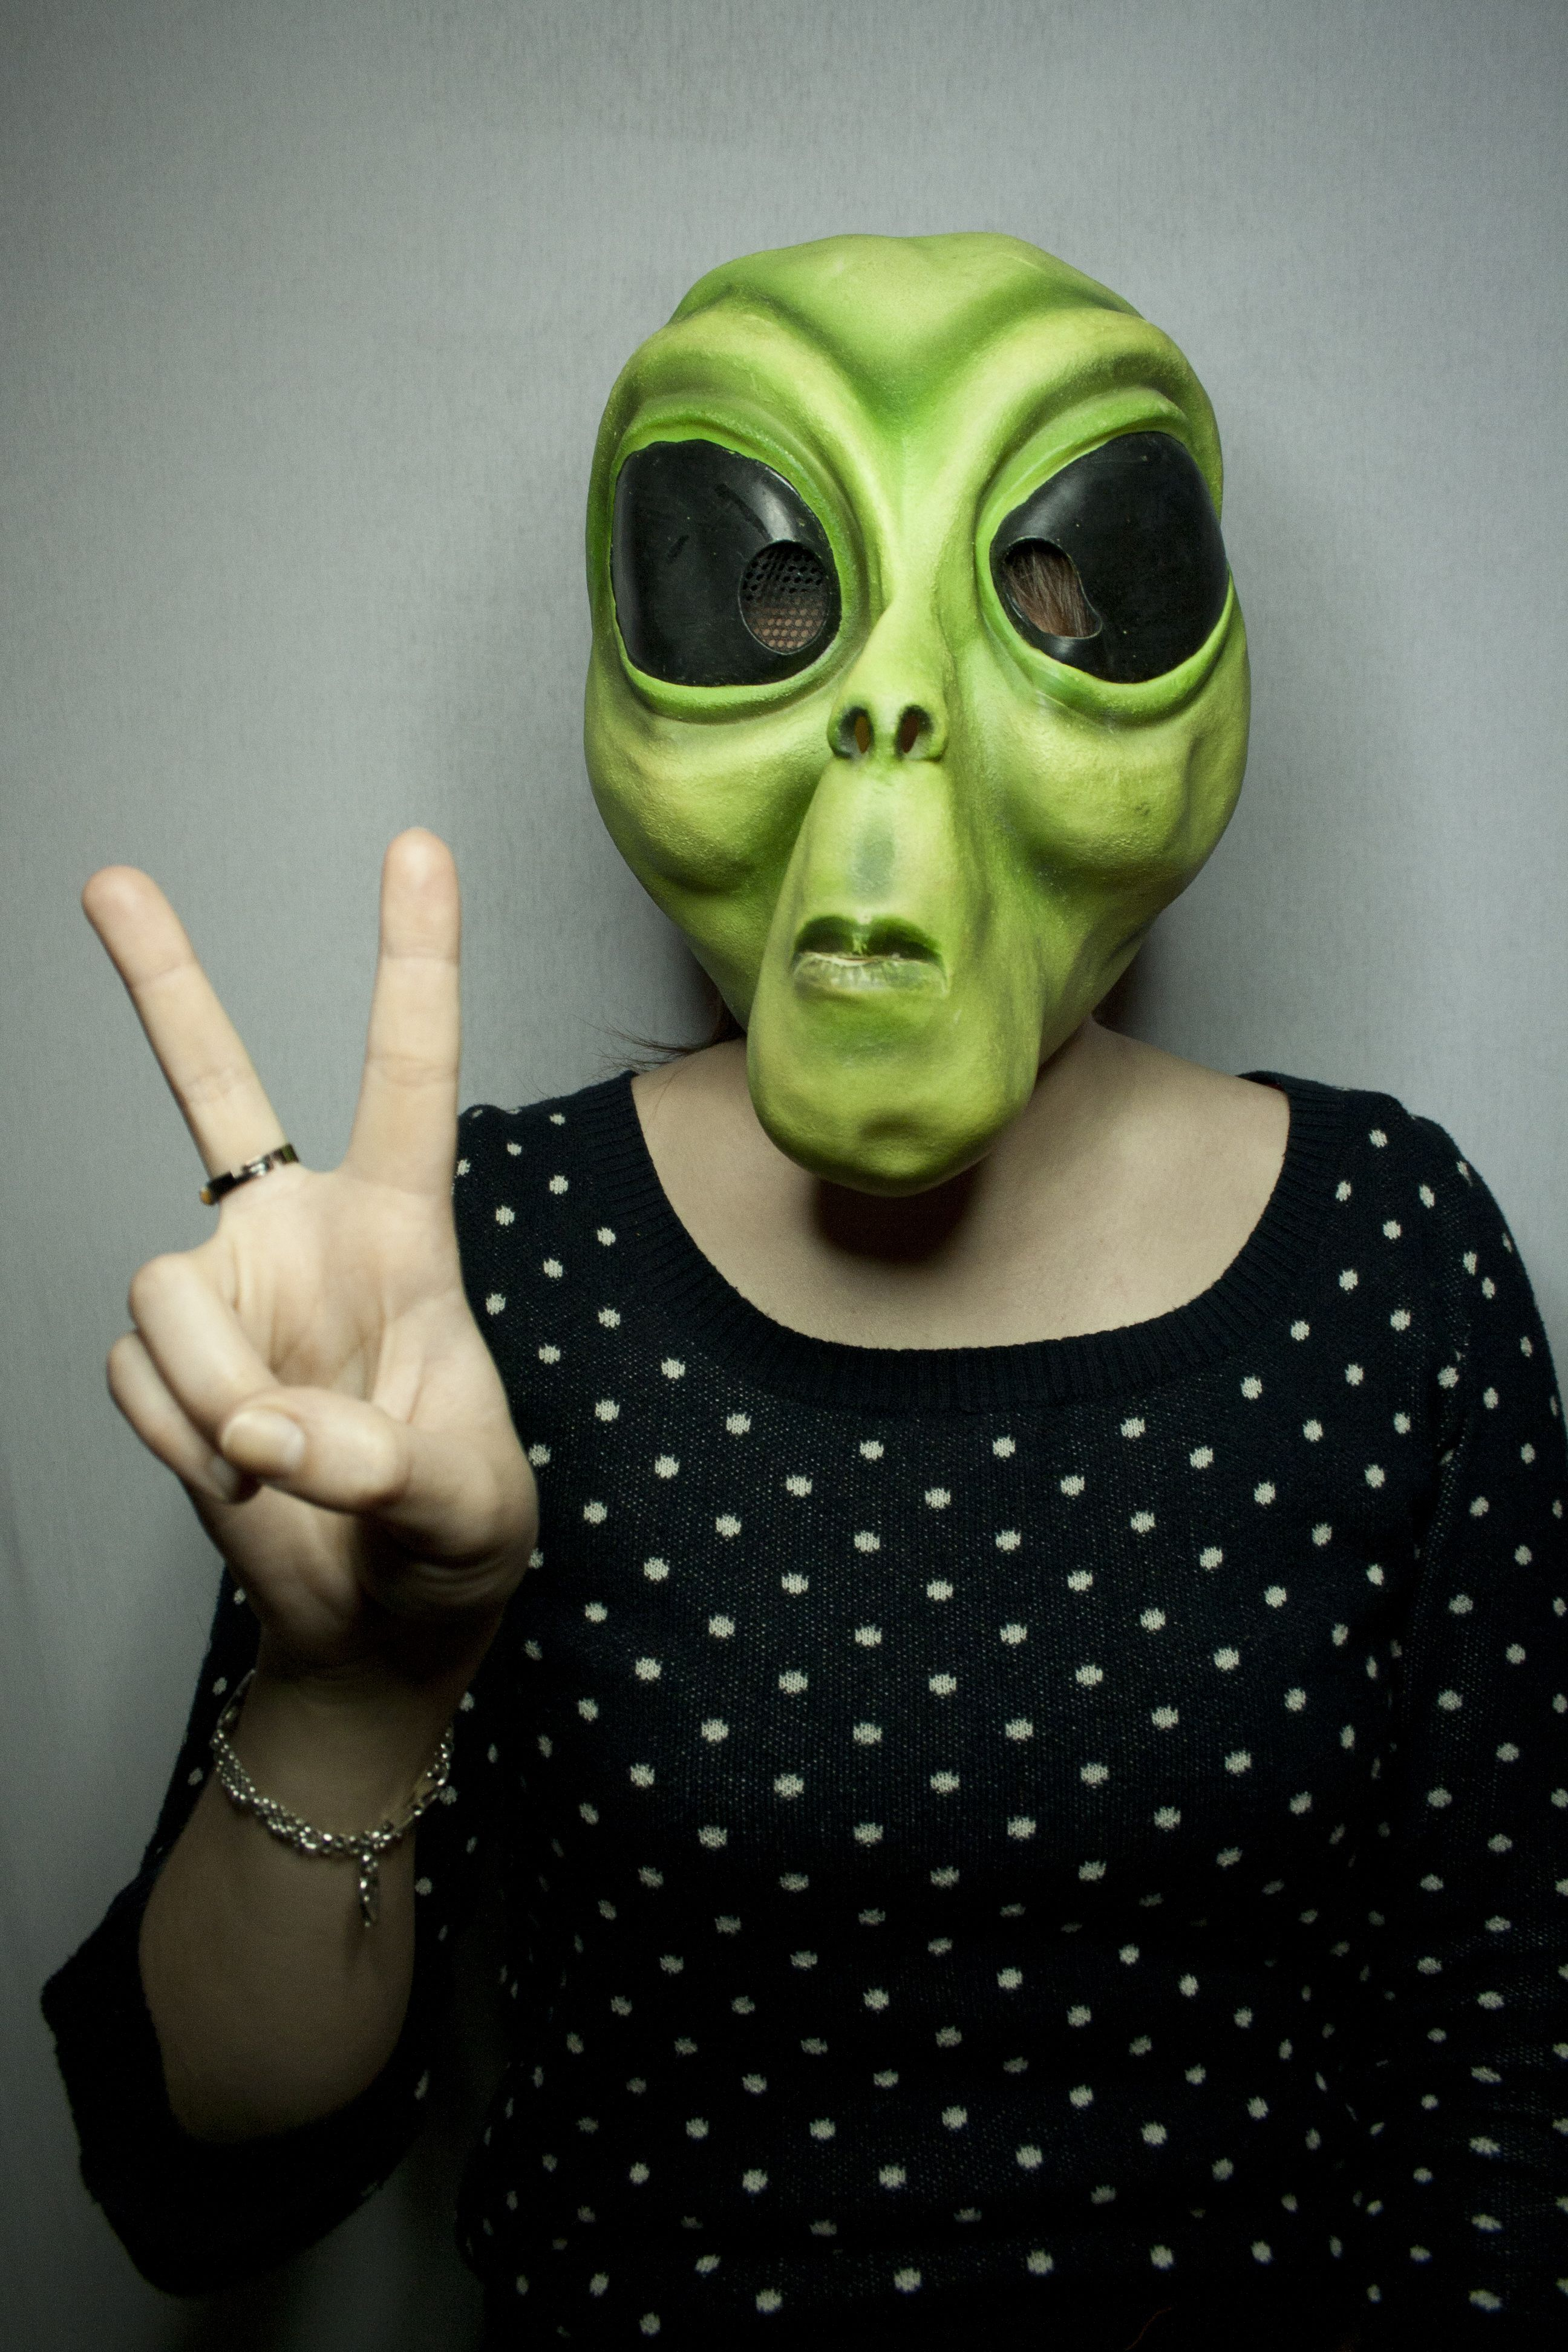 extraterrestrial peace